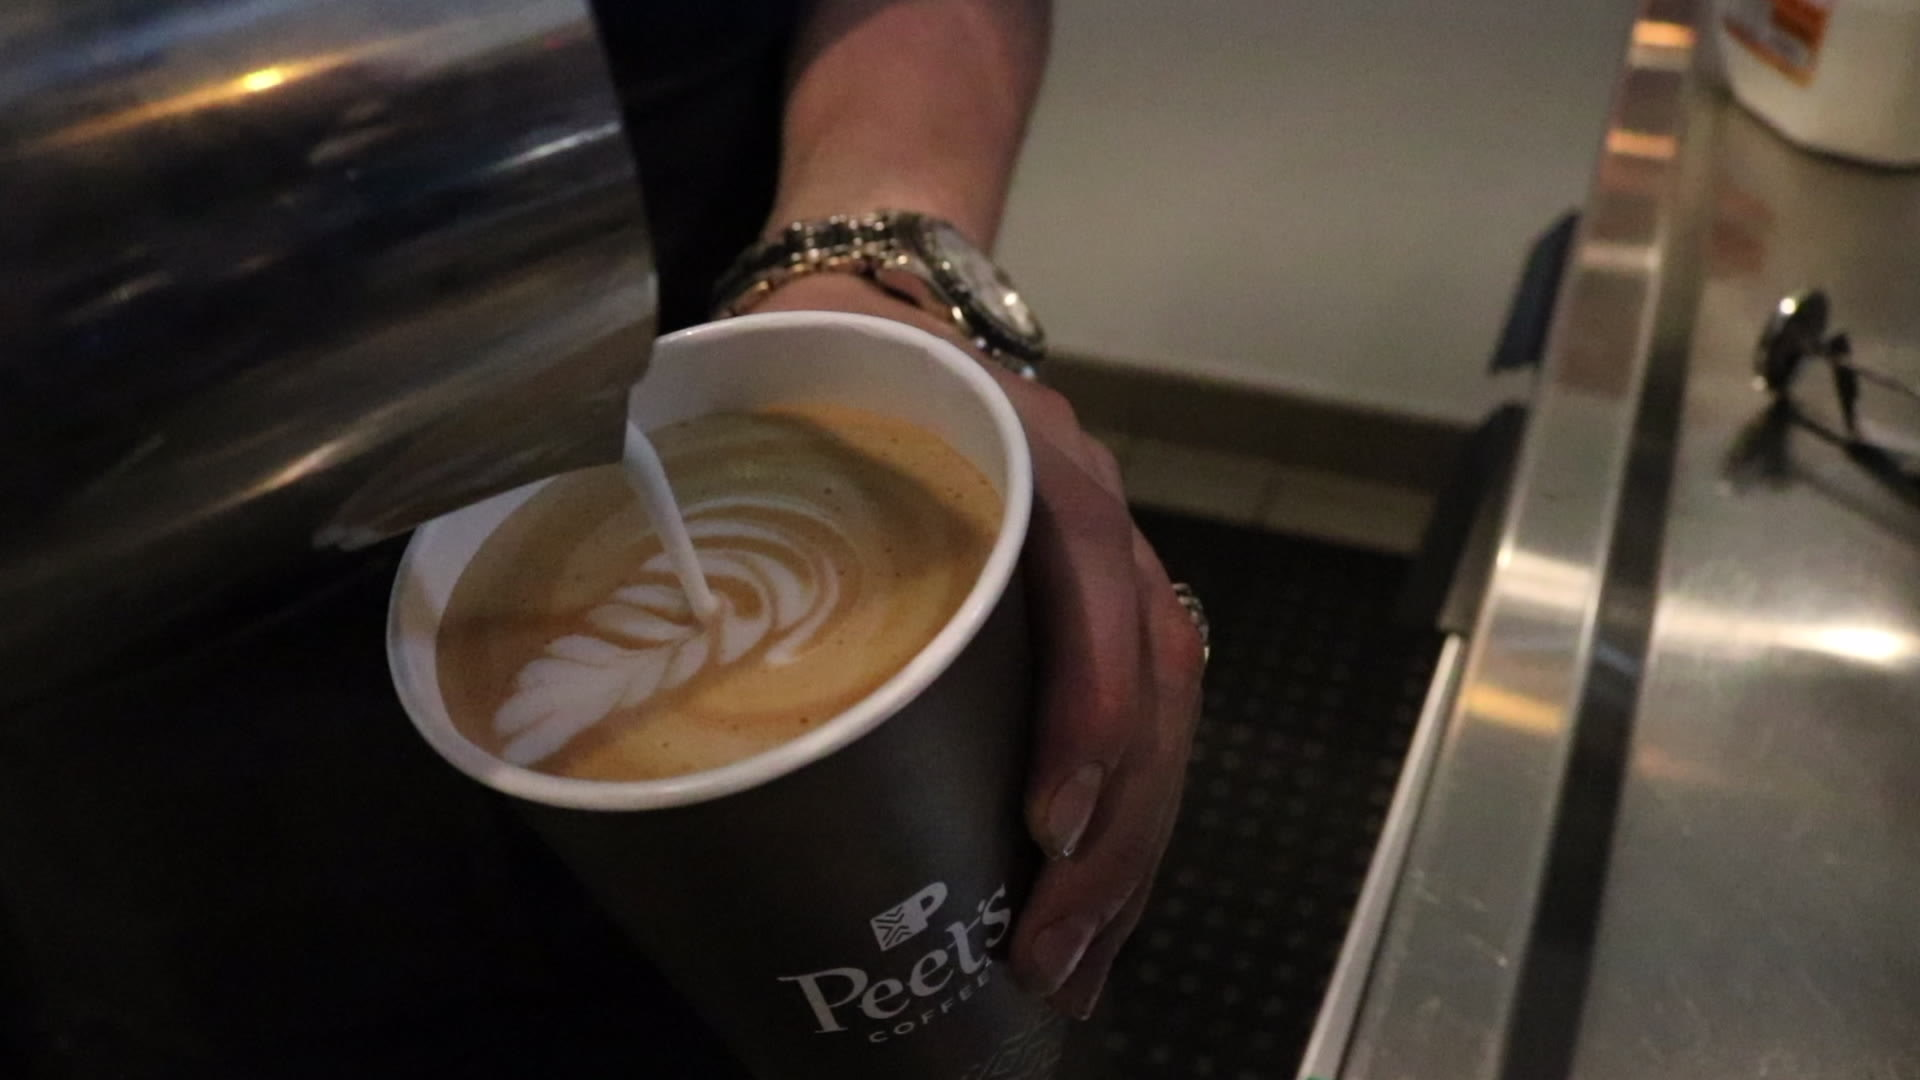 Peet S Coffee From California Plans More Shops In Las